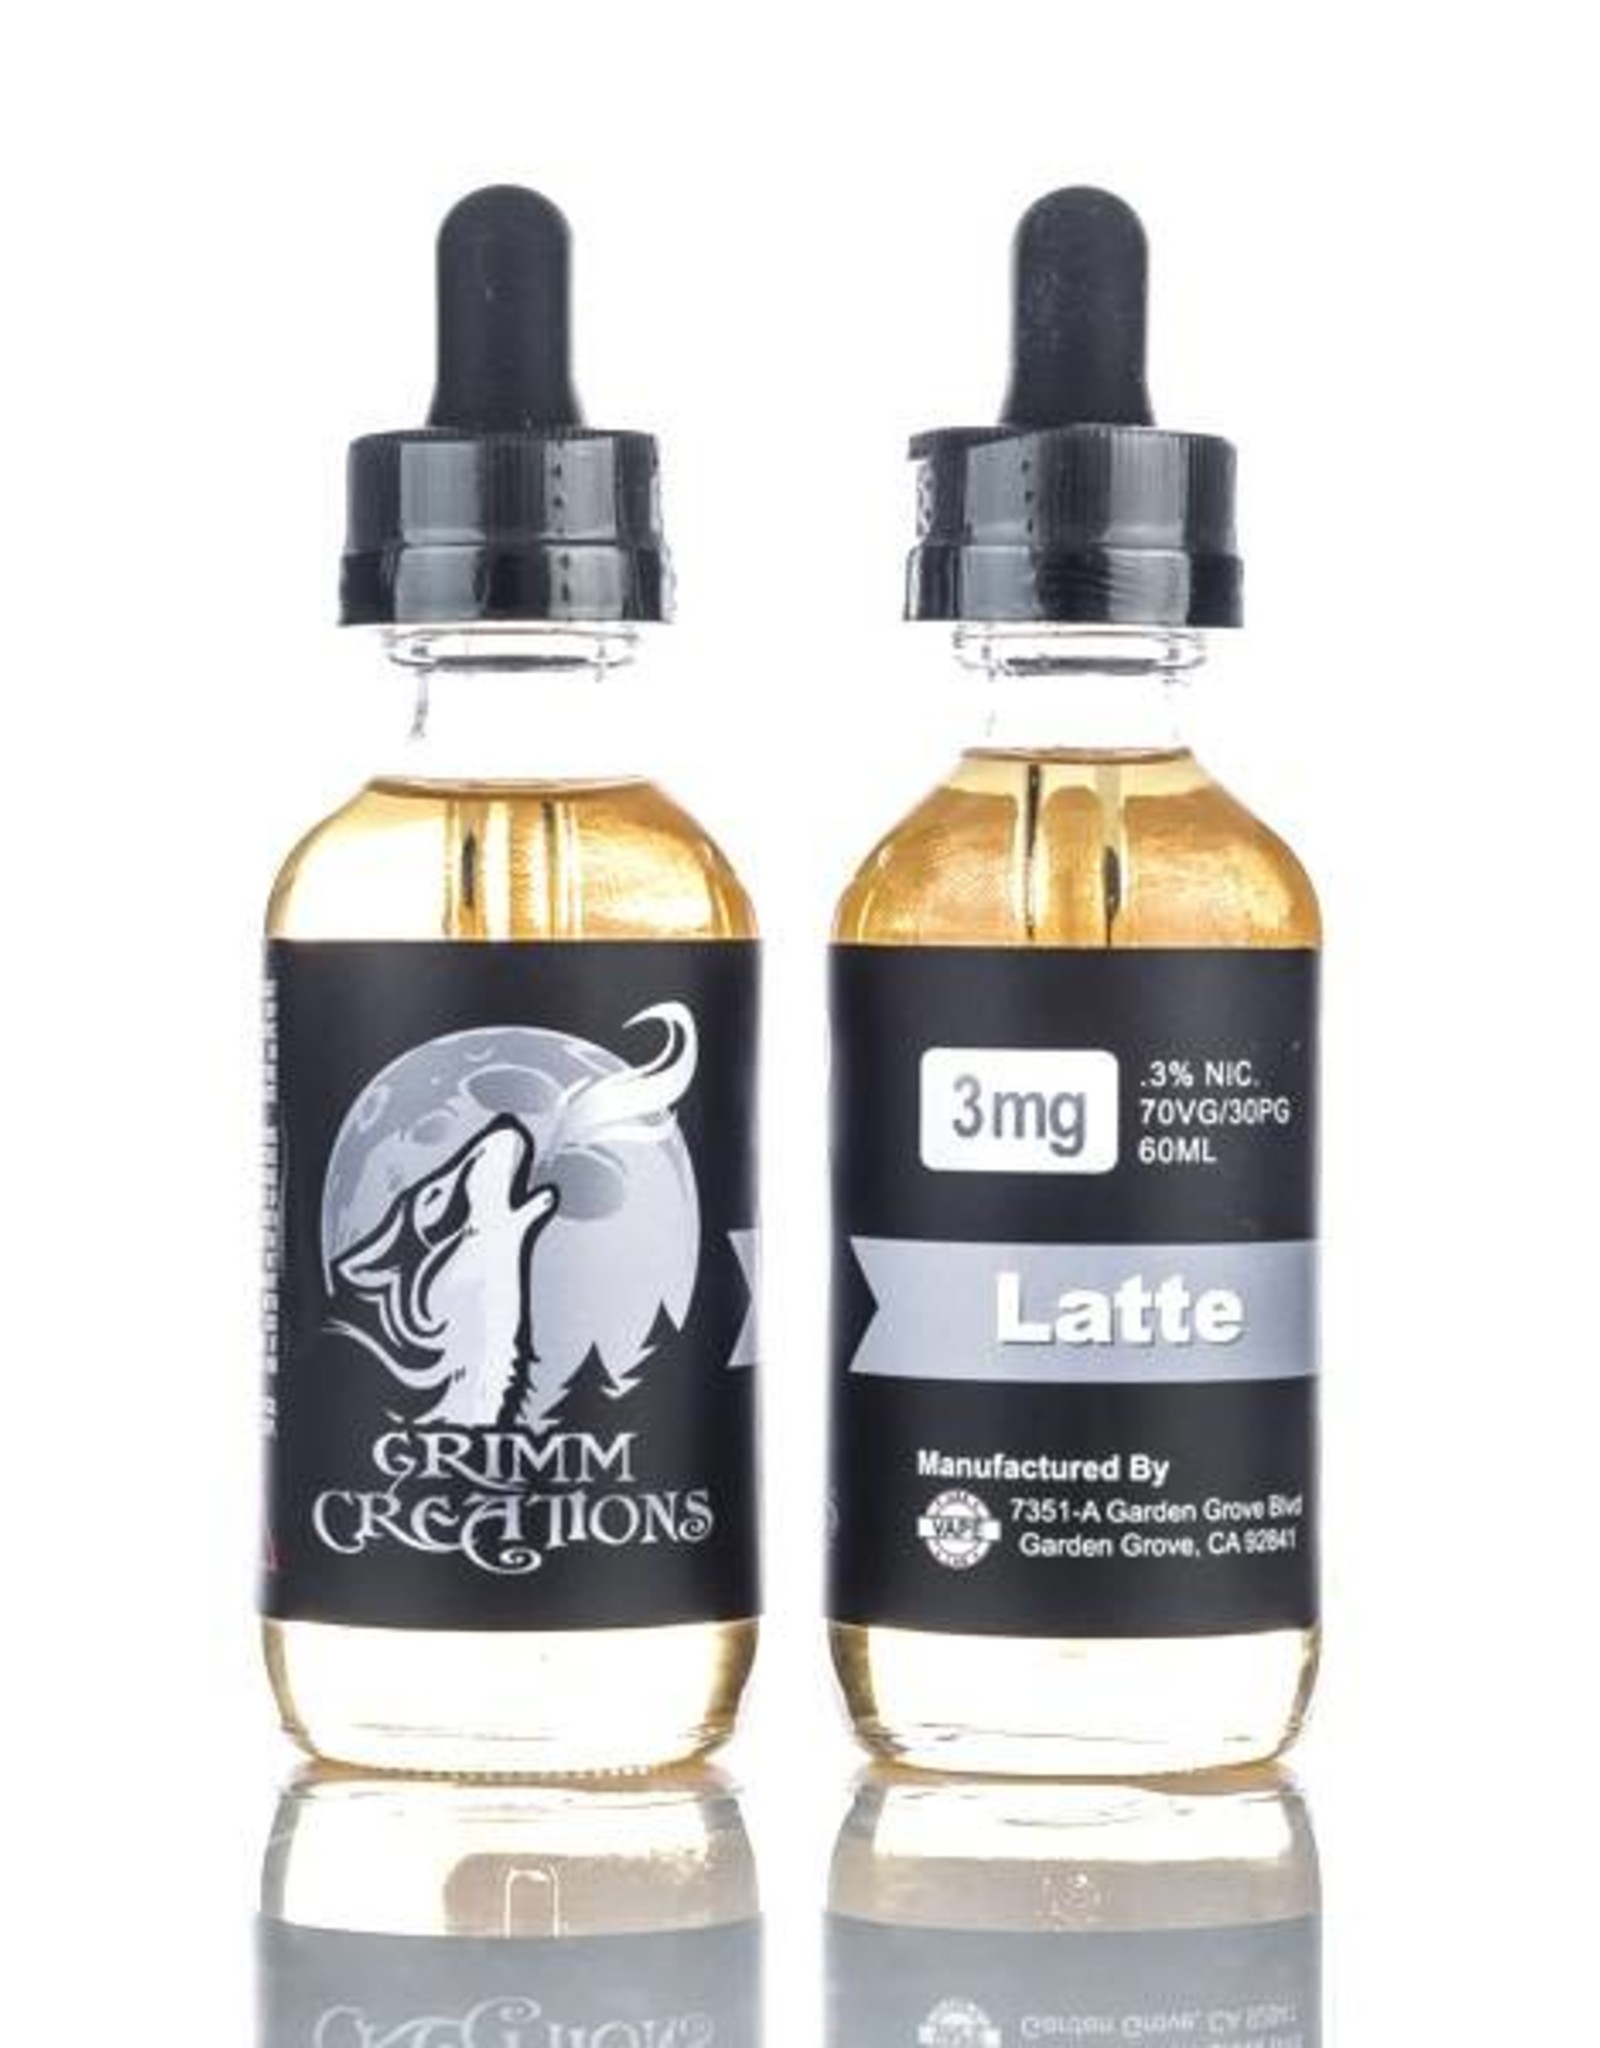 GRIMM CREATIONS LATTE BY GRIMM CREATIONS(60ml)